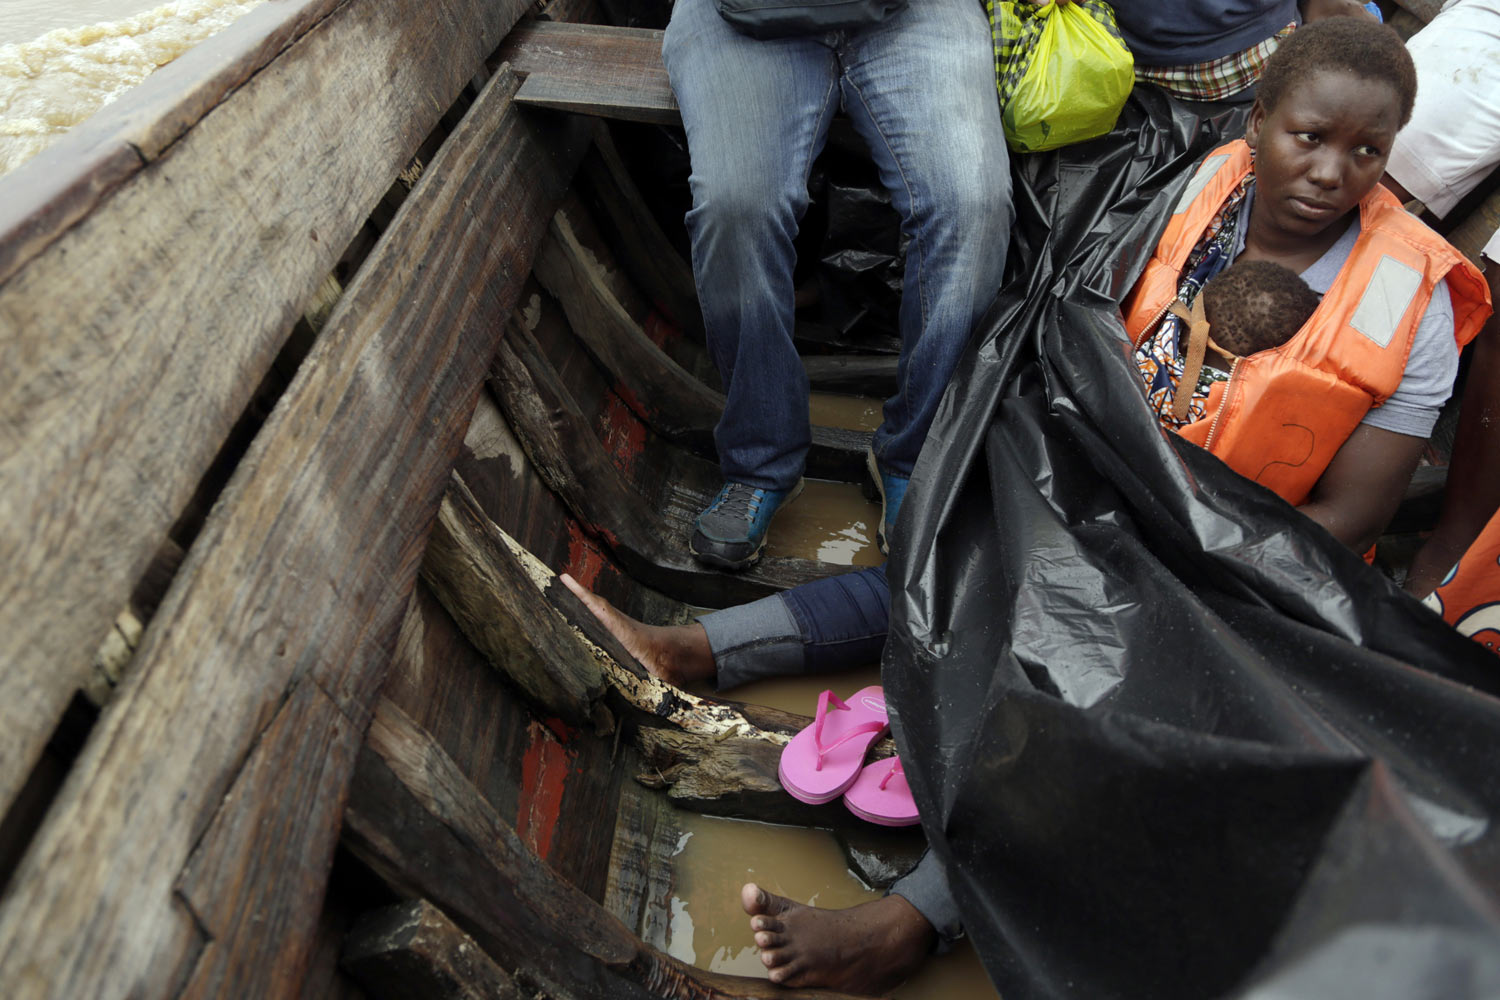 Veronica Fatia carries her 2-year-old daughter as they travel in a wooden boat to Buzi district, 200 kilometers (120 miles) outside Beira, Mozambique, on Saturday, March 23, 2019. They left the cyclone-shattered city of Beira for the town of Buzi, which for a week people had been fleeing to with little but their clothes. (AP Photo/Themba Hadebe)